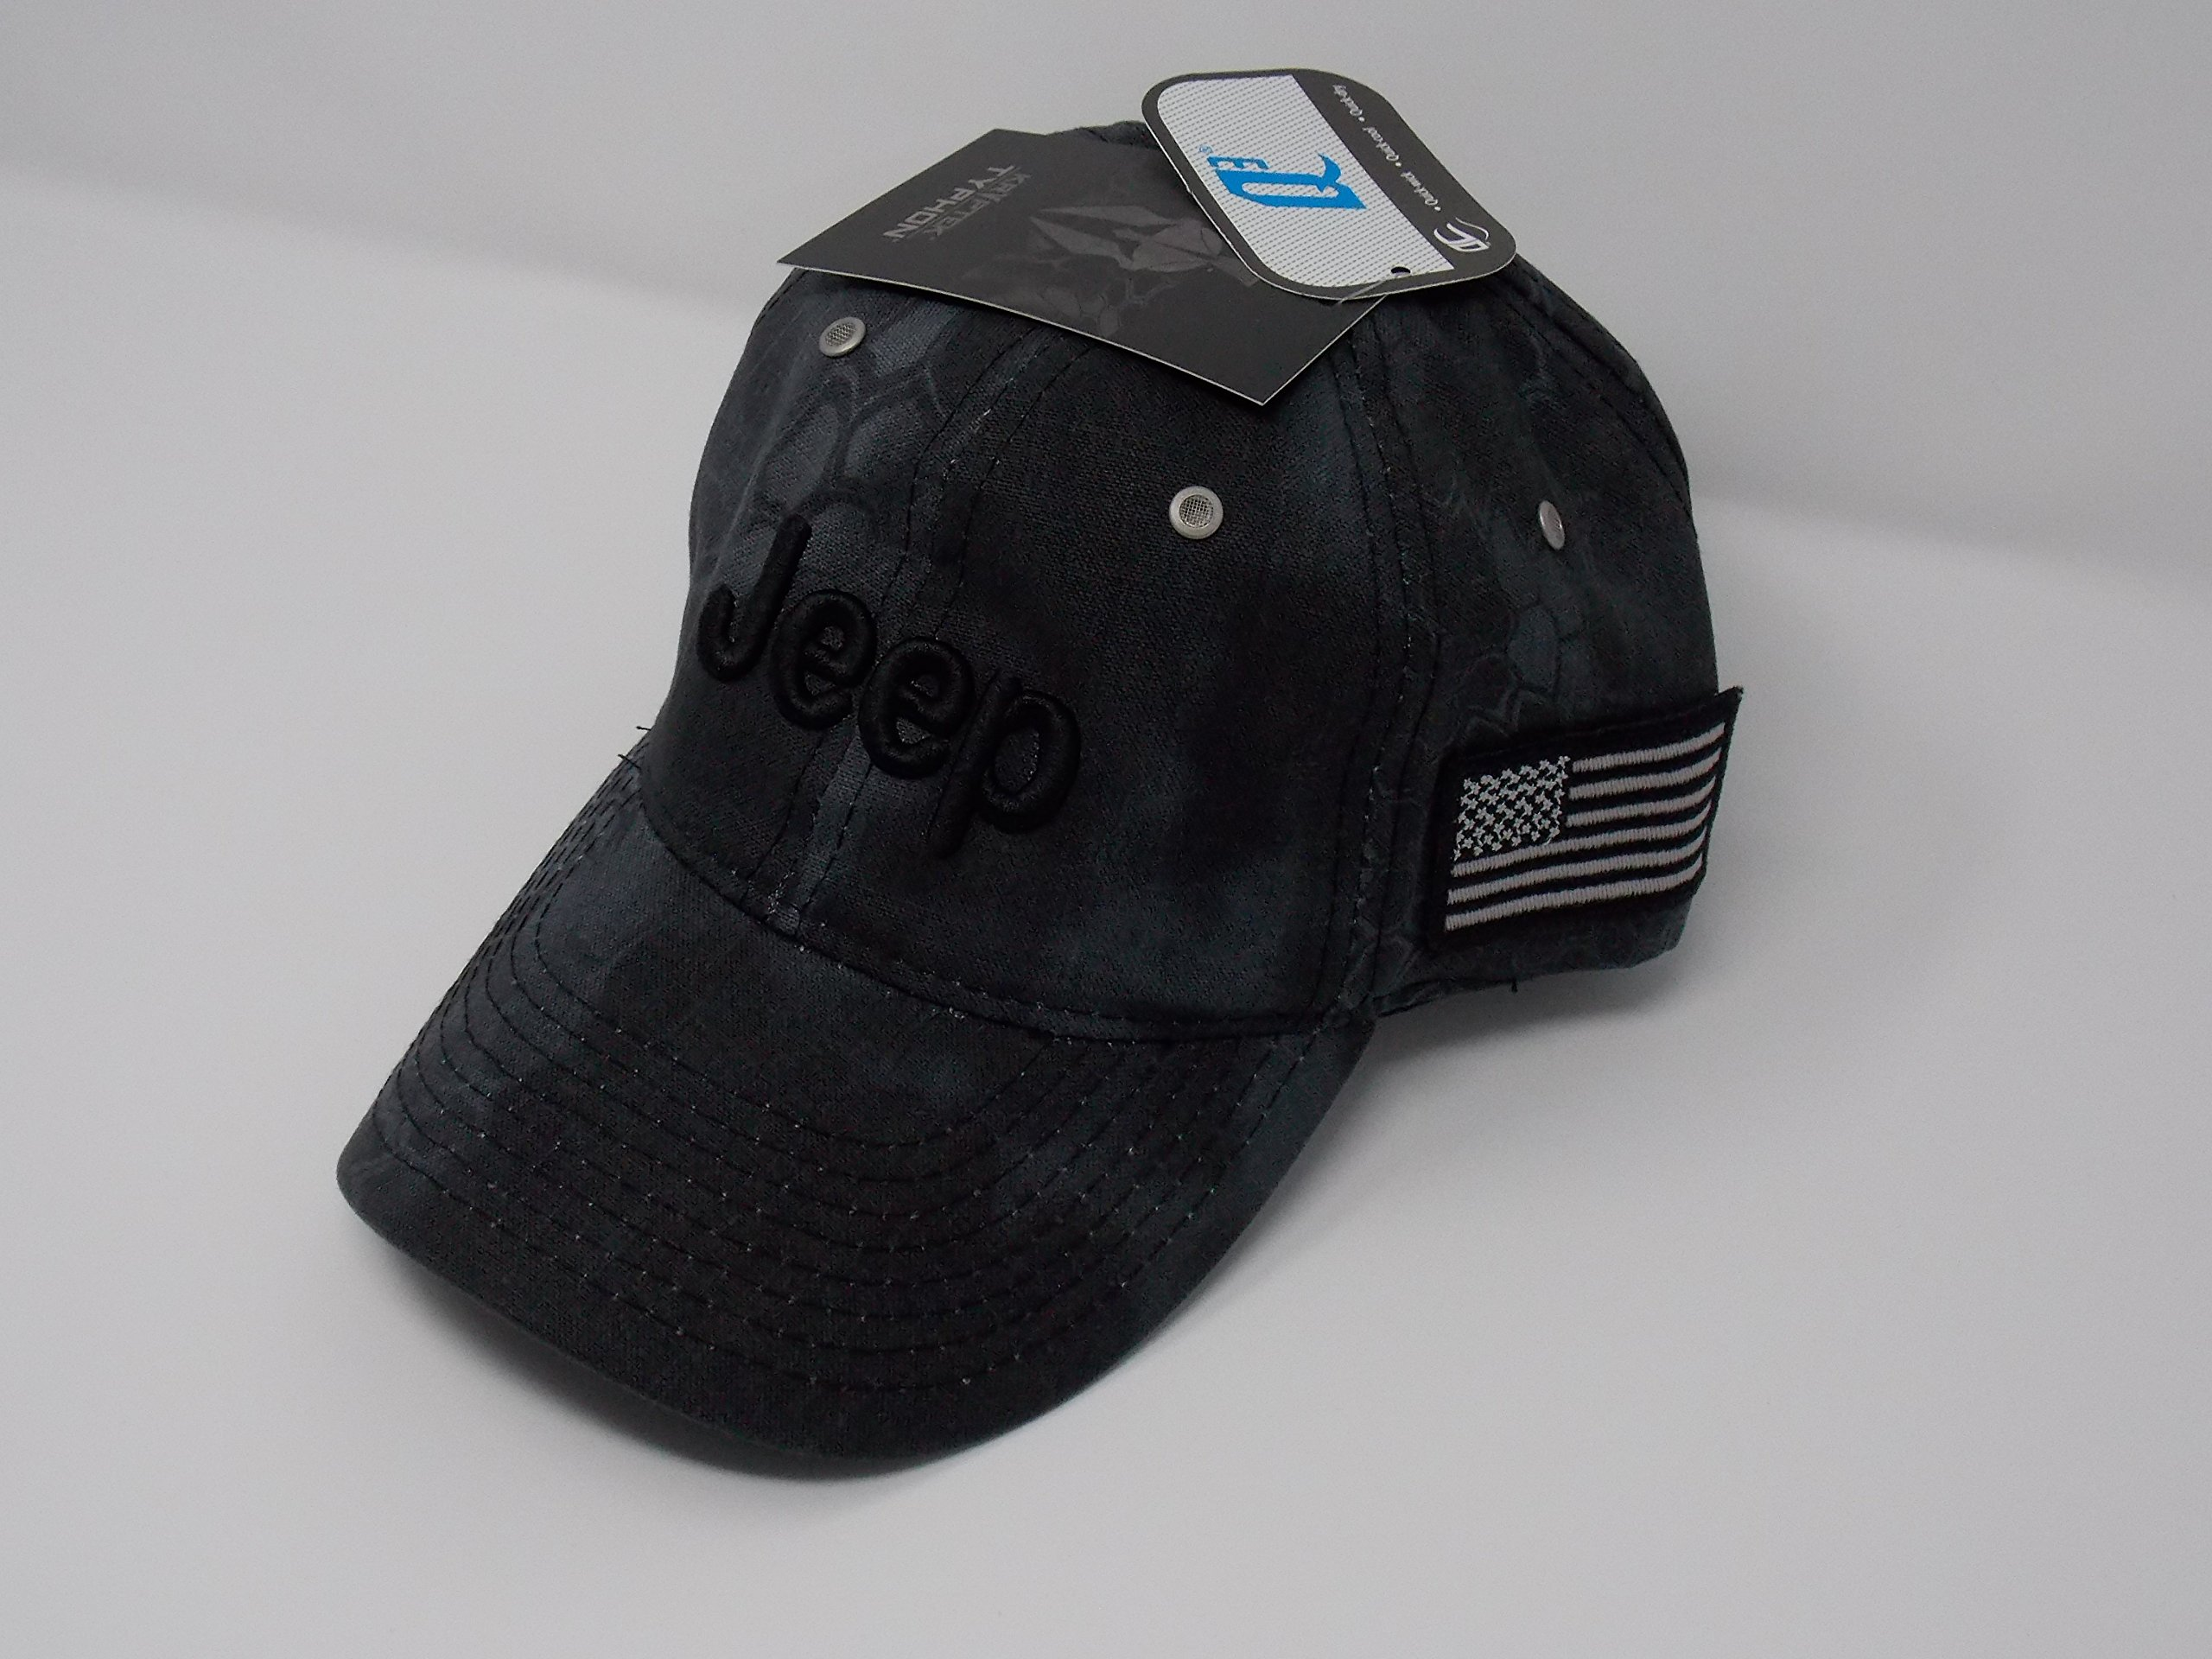 Jeep Charcoal Typhon Camo Cap by Jeep (Image #2)